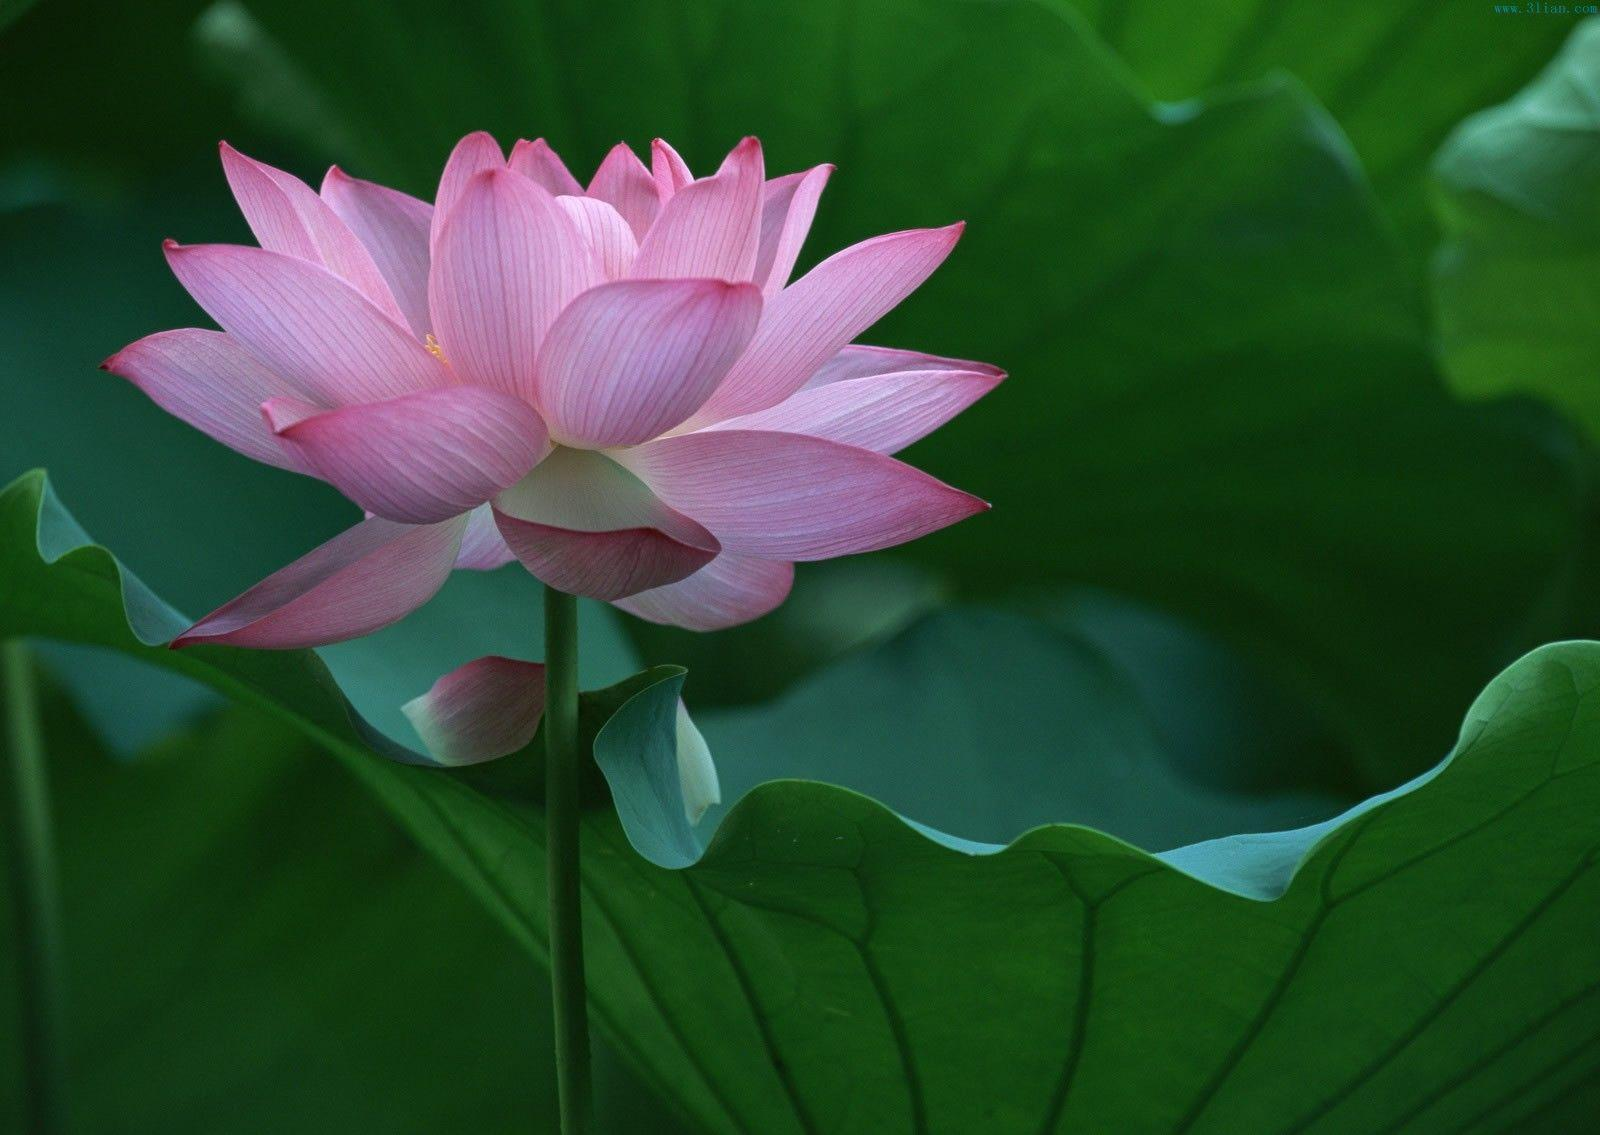 Cute Pink Lotus Flower Wallpaper for Computer HD - Free Download ...